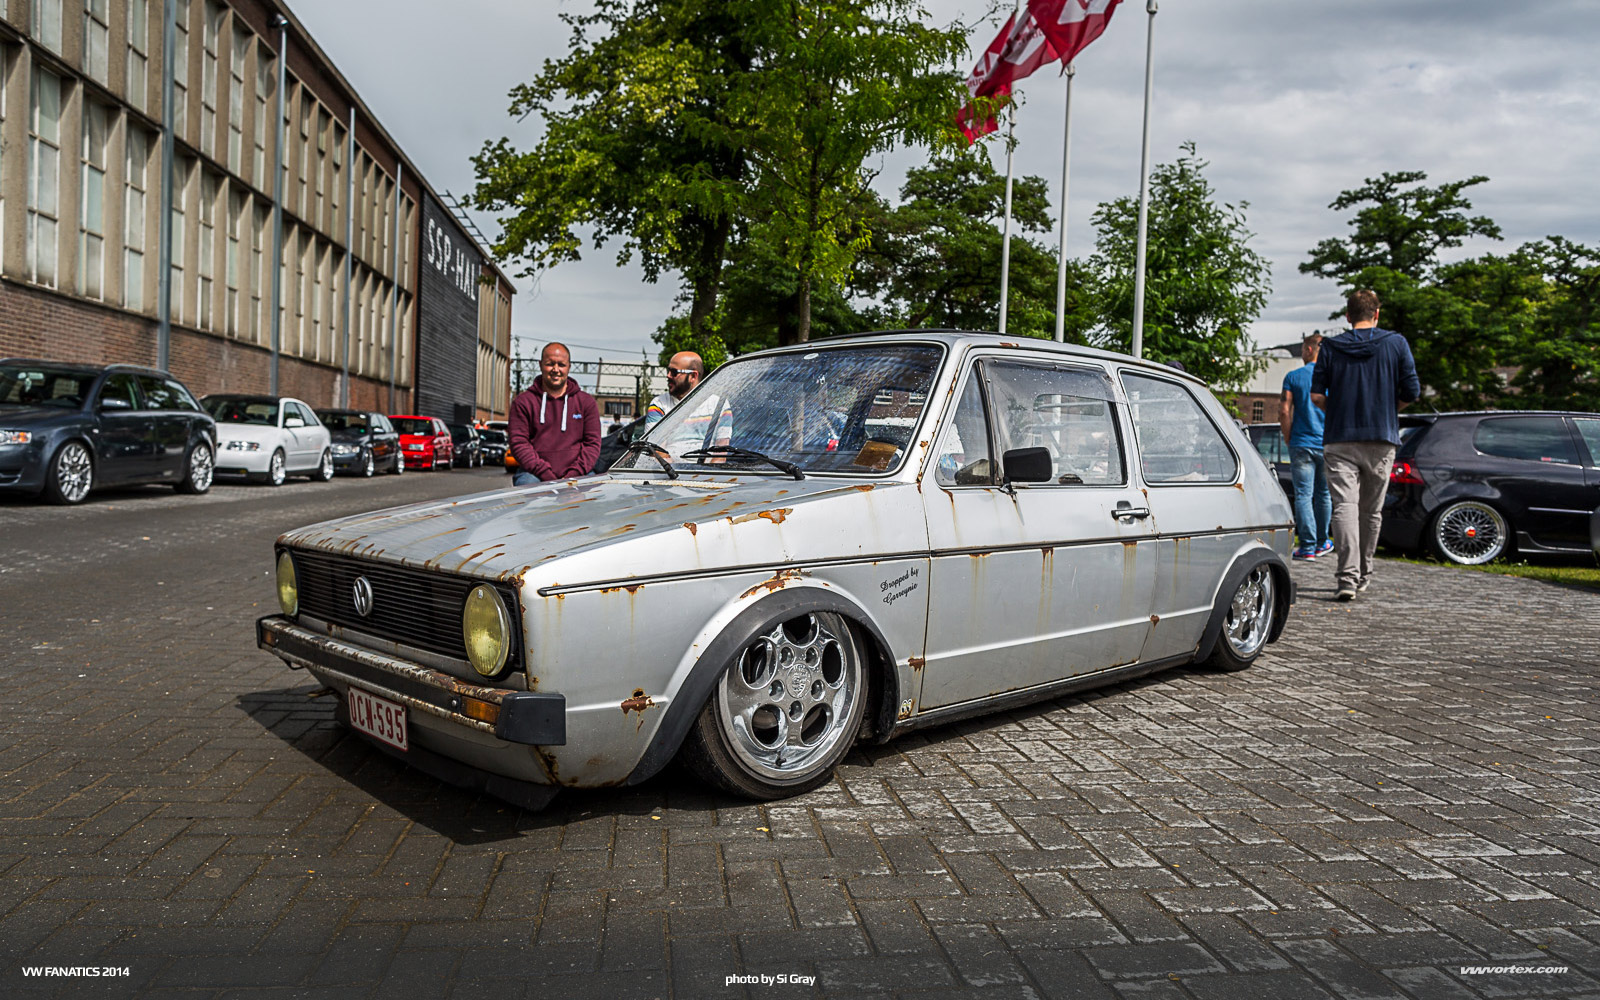 VWFanatics-2014-Si-Gray-480